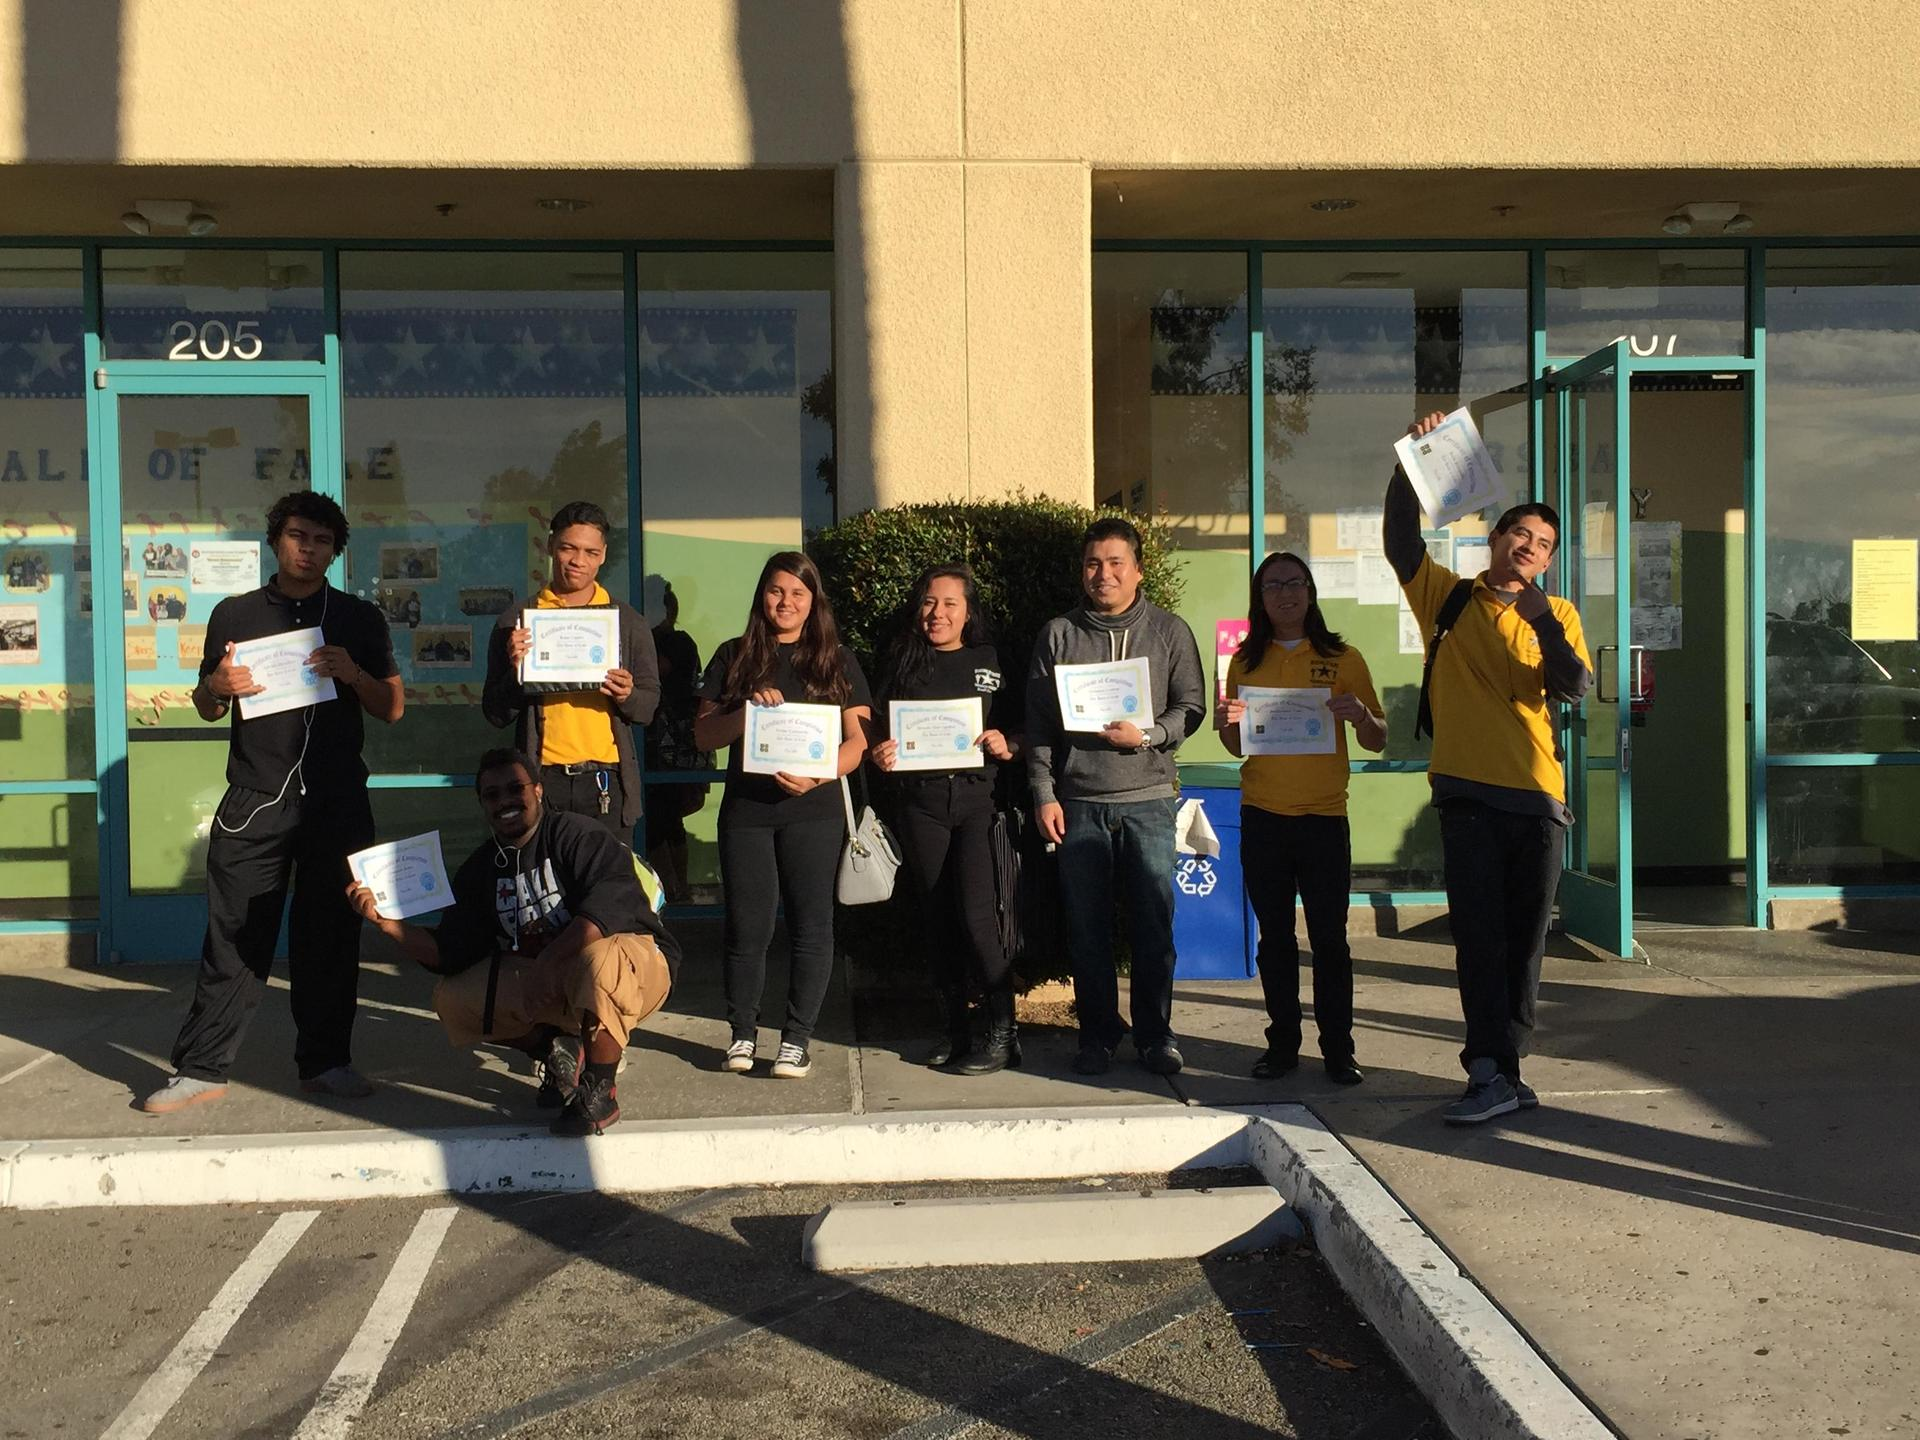 Moreno Valley students pose with awards